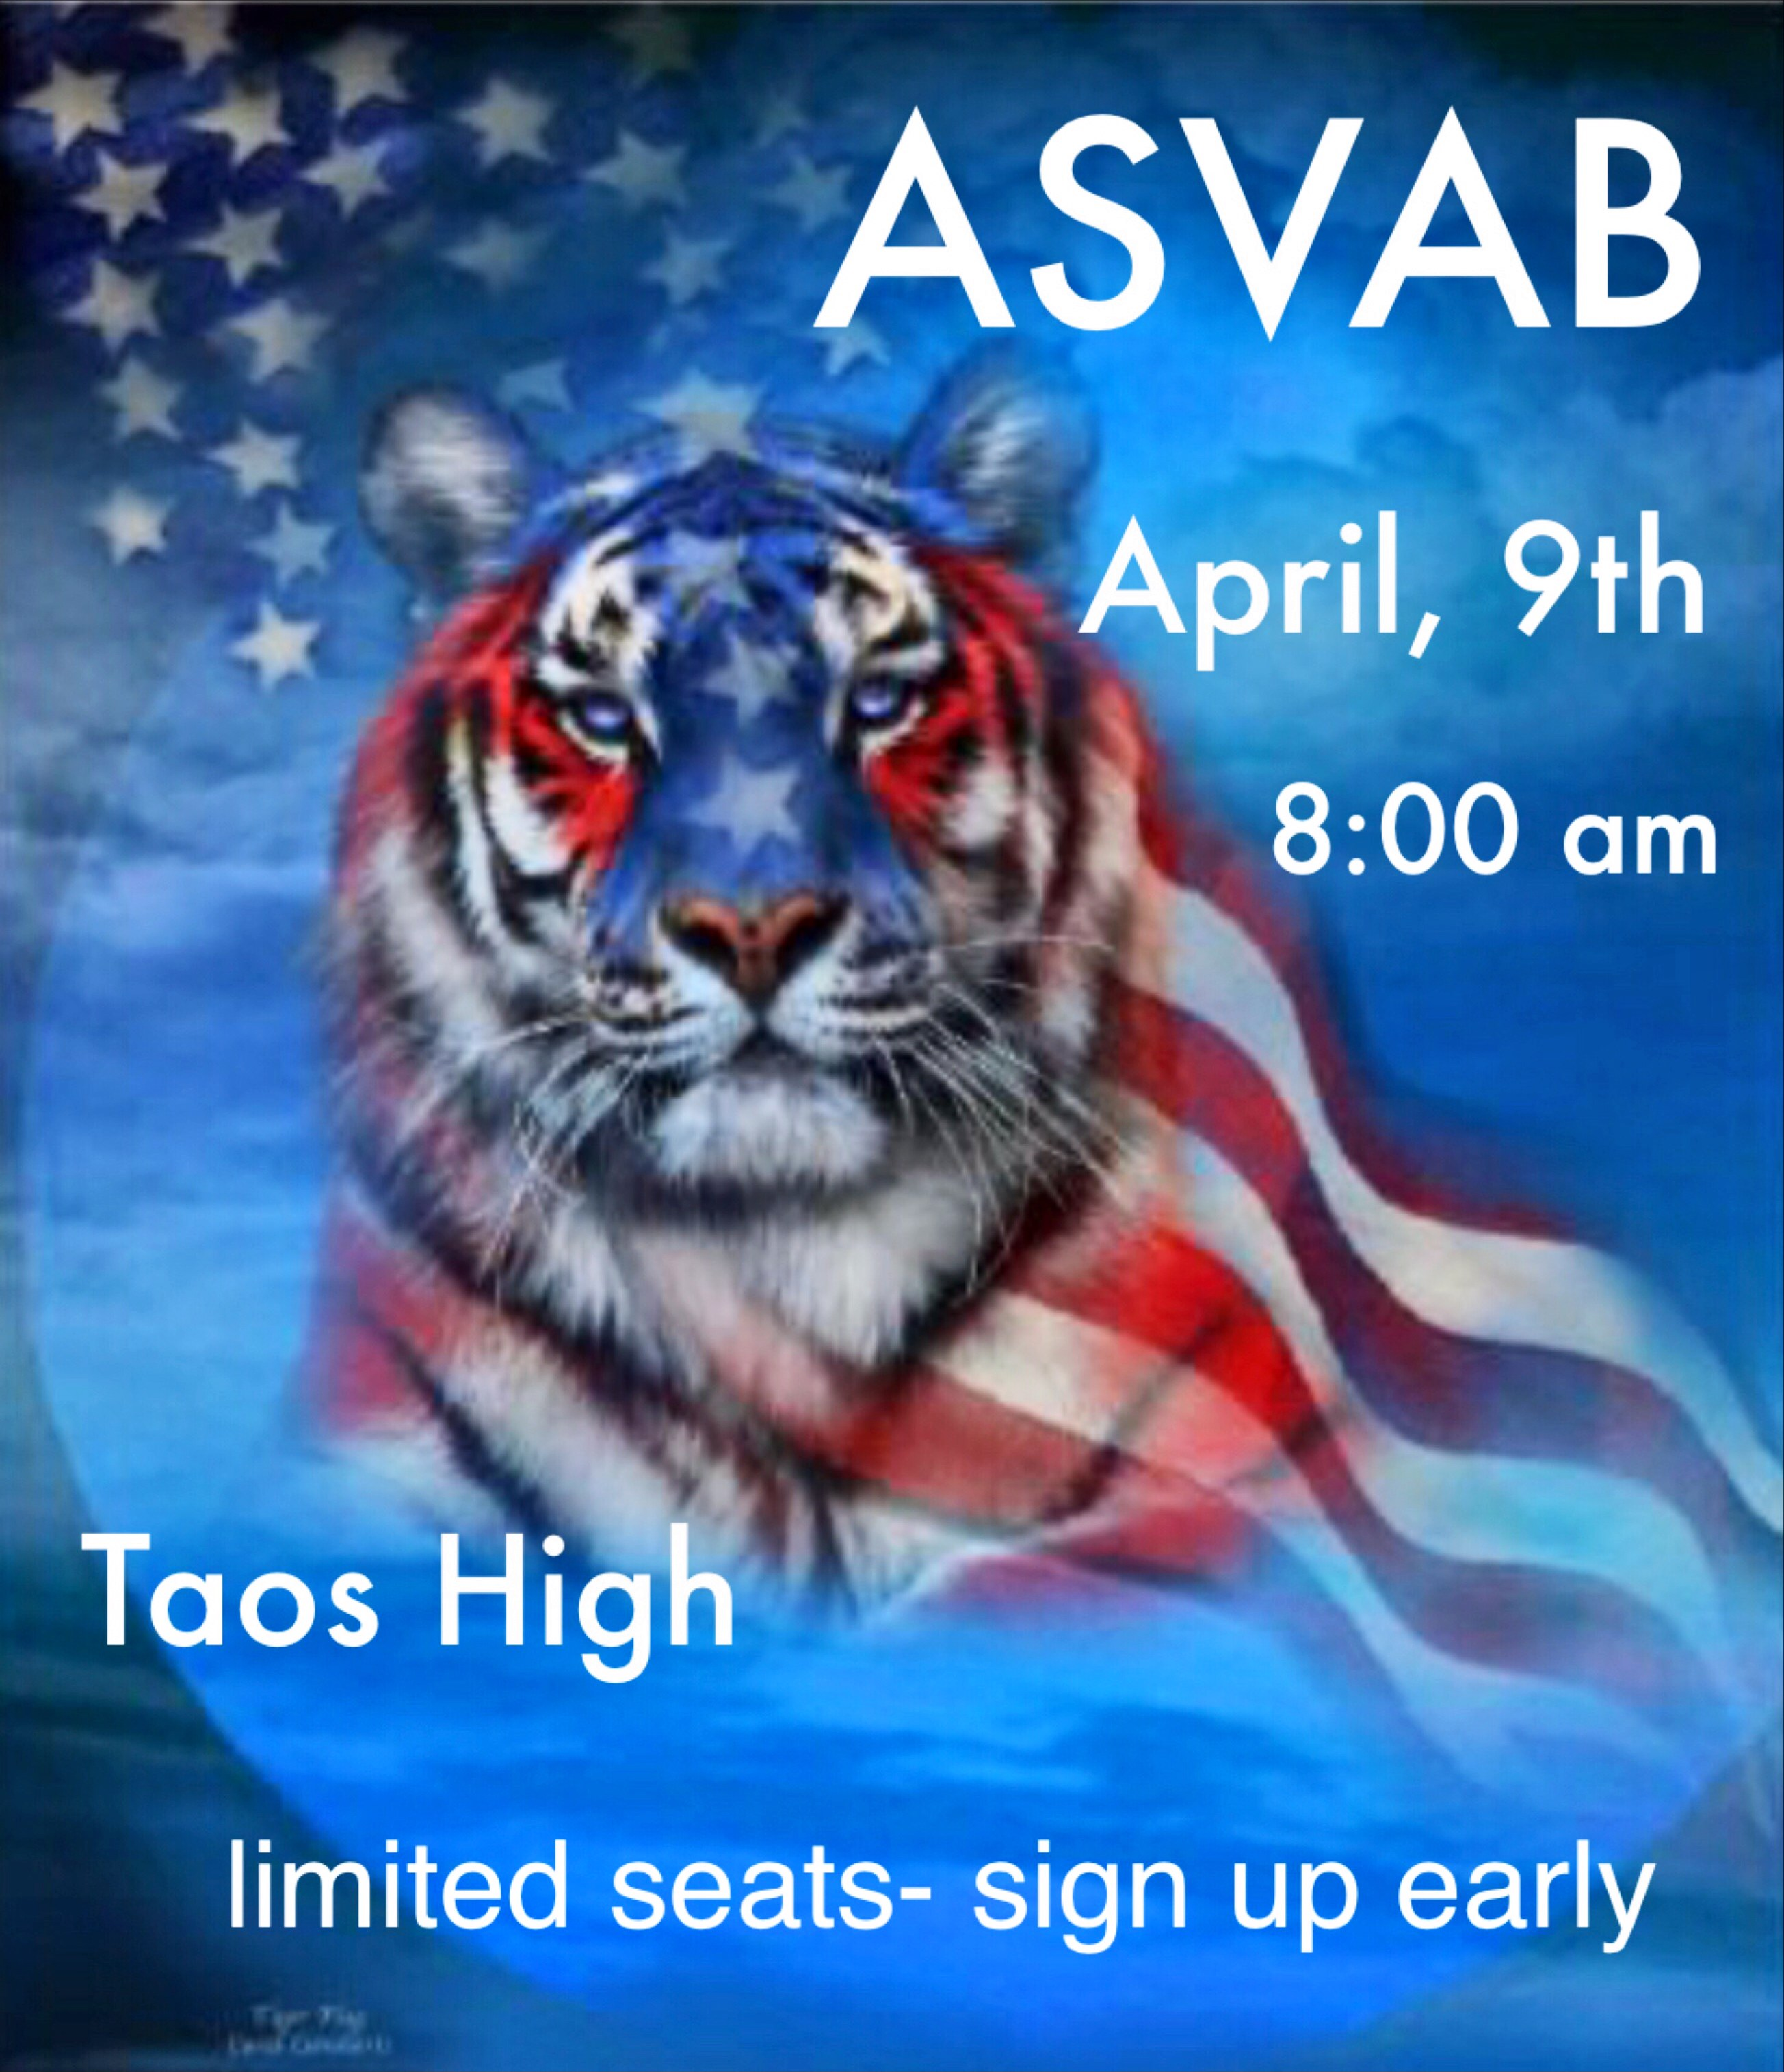 Sign up for the ASVAB on April 9th.